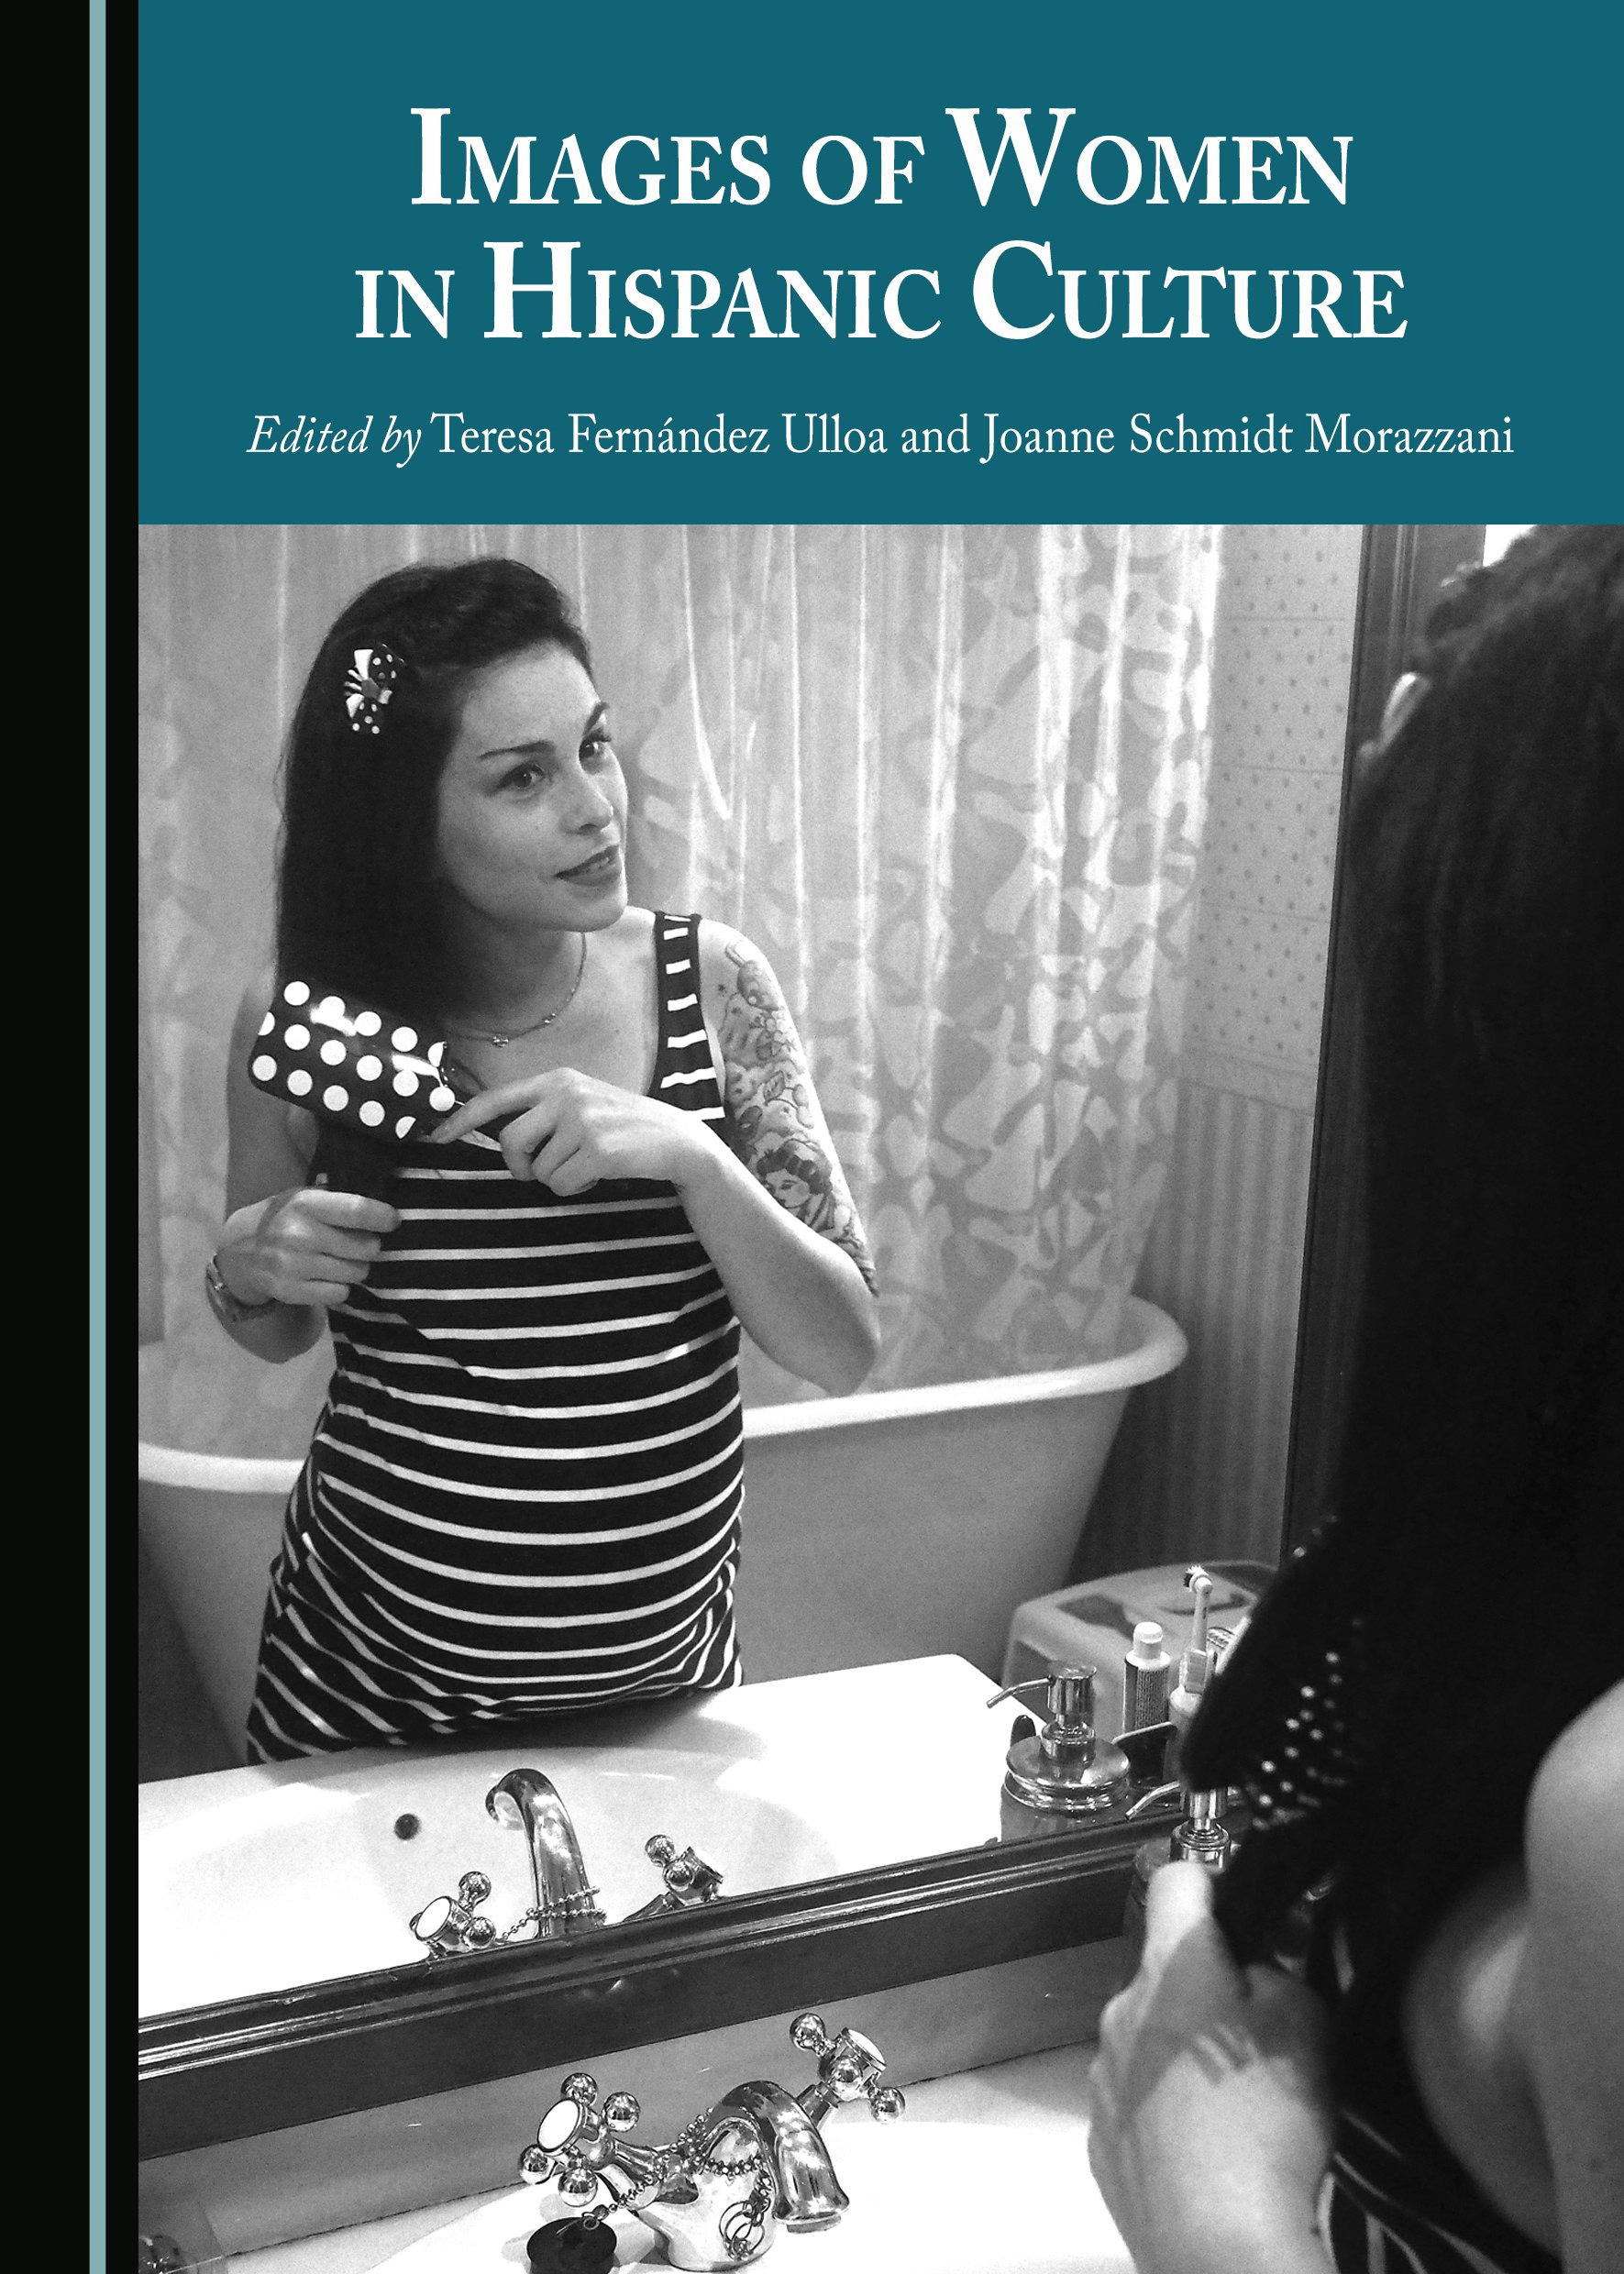 Images of Women in Hispanic Culture